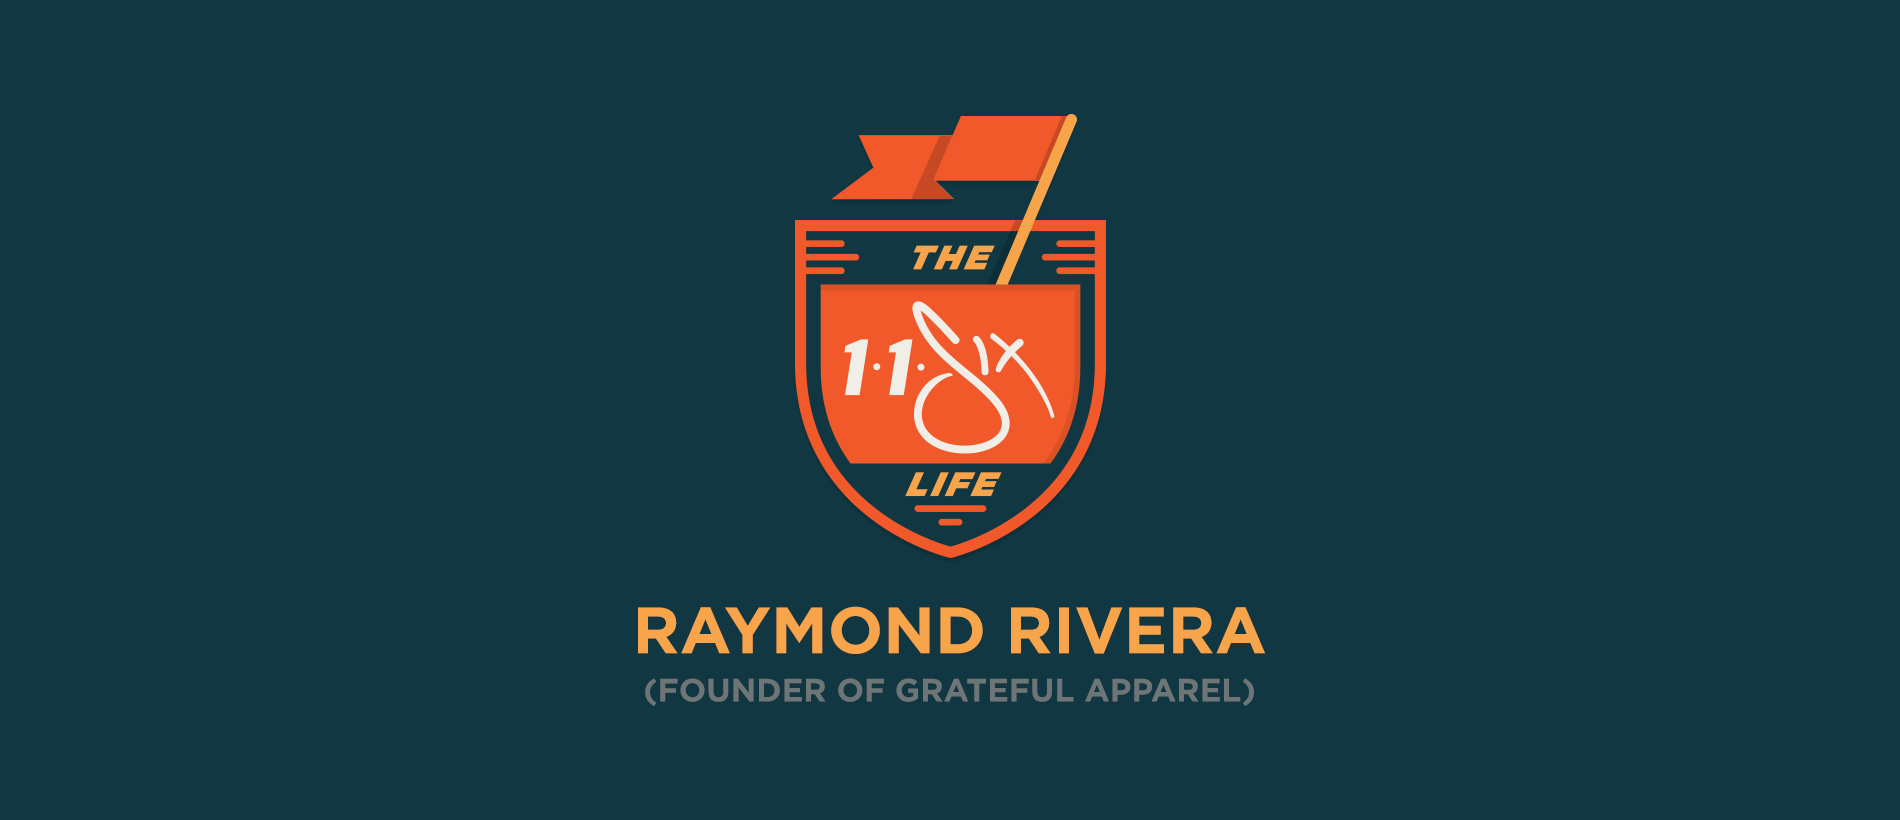 The 116 Life x Uncomfortable x Raymond Rivera